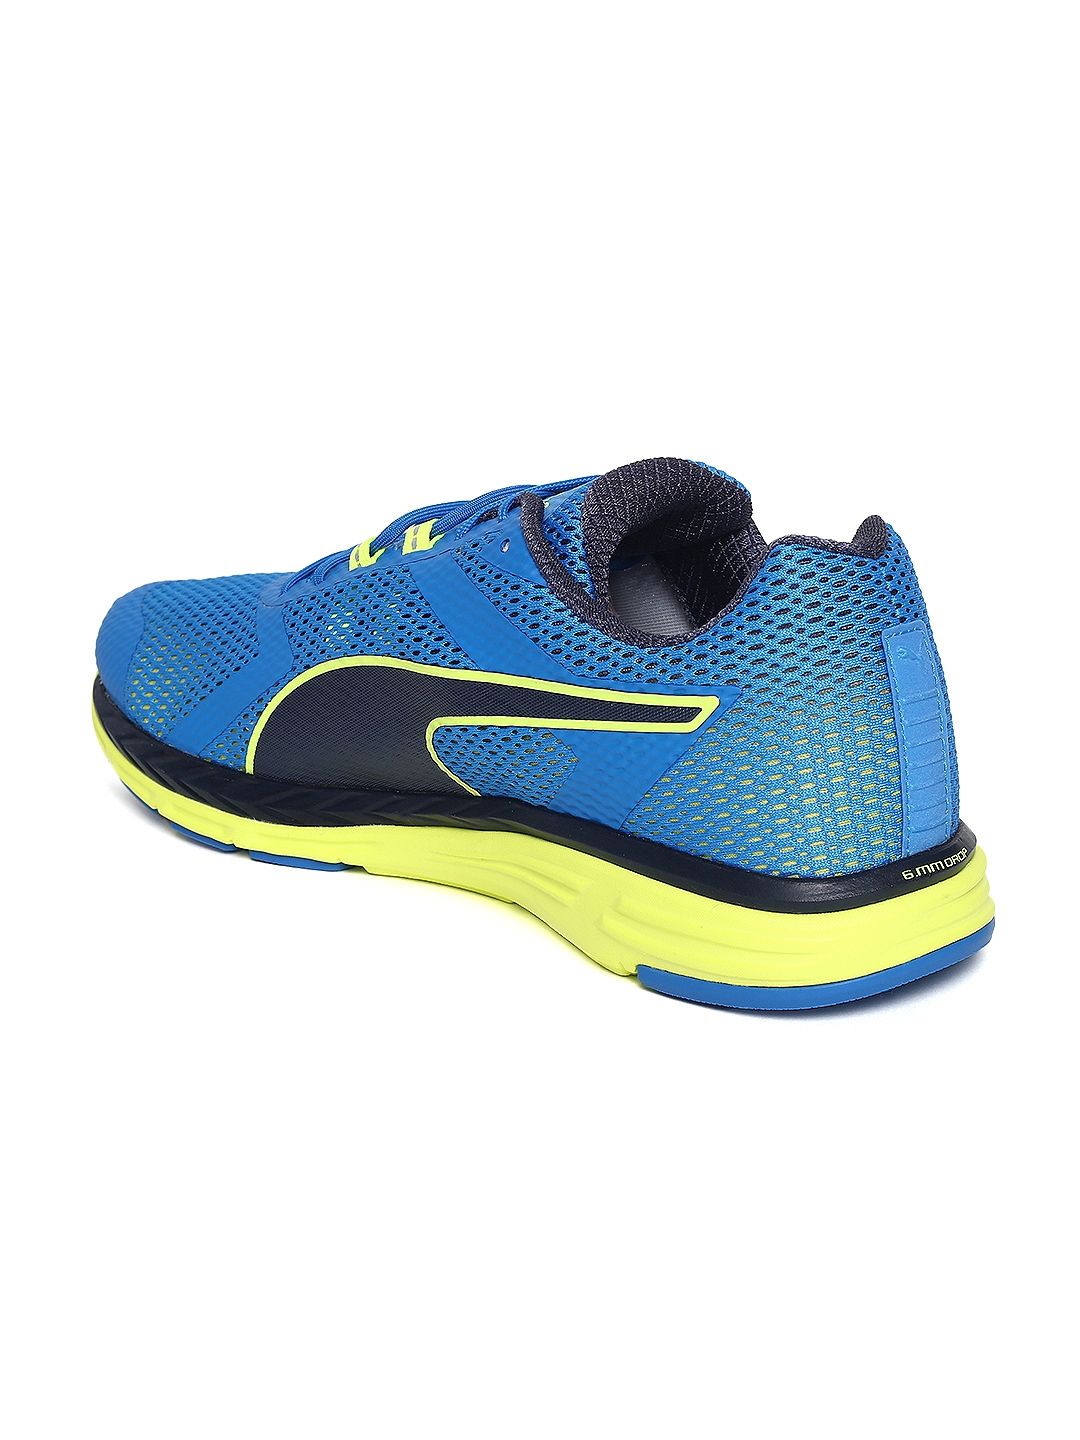 a29540e8930 Buy Puma Men Blue Speed 500 Ignite Running Shoes - Sports Shoes for ...